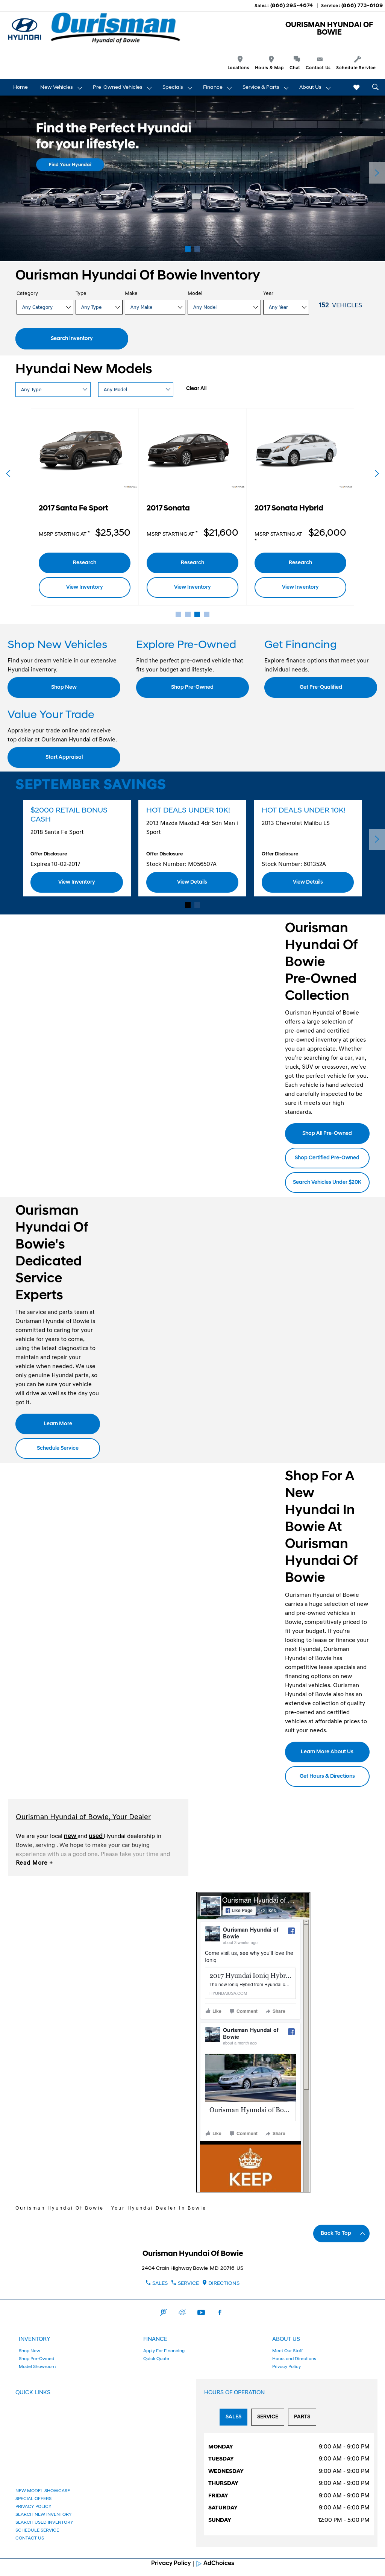 Ourisman Hyundai Of Bowie Website History